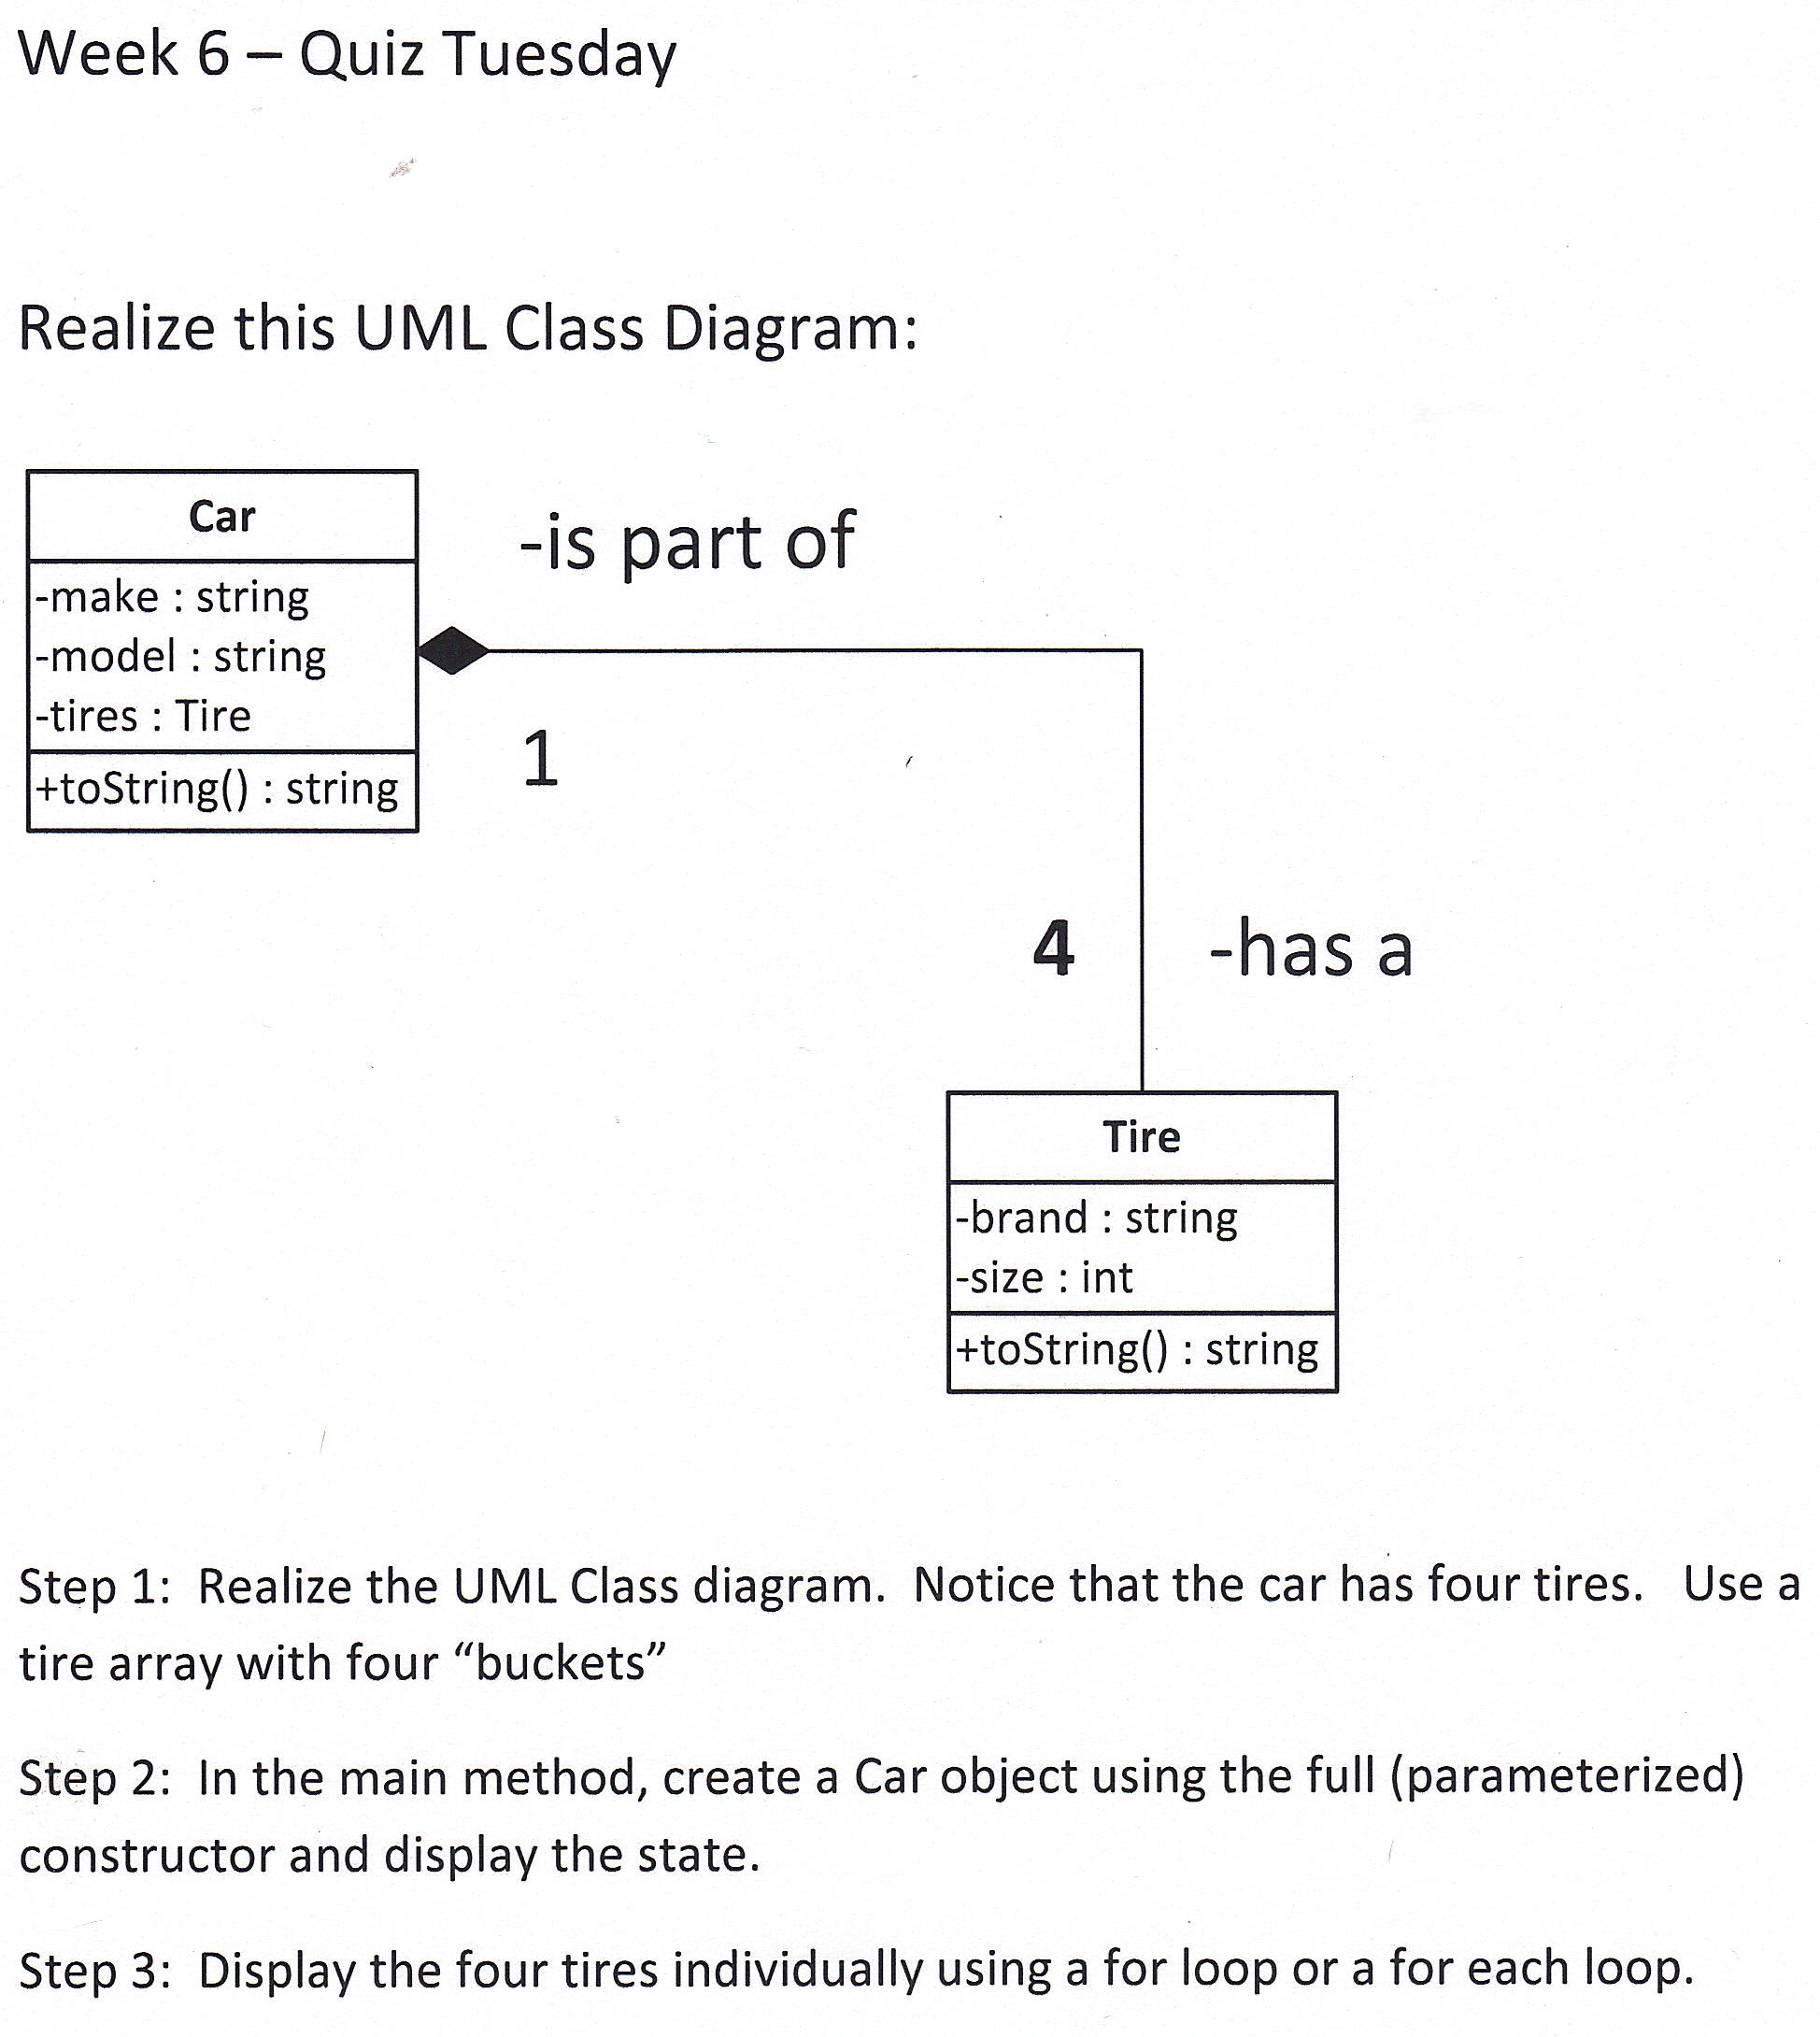 Week 6 quiz tuesday realize this uml class diagram chegg question week 6 quiz tuesday realize this uml class diagram car is part of make string model string ccuart Choice Image